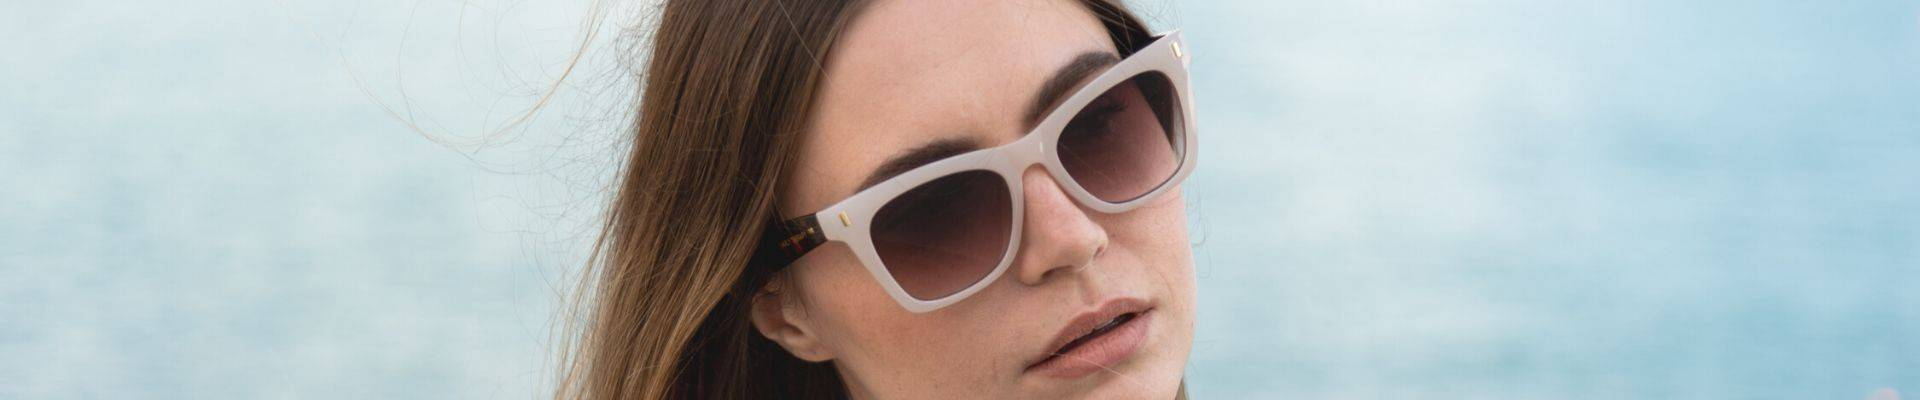 Lunettes de soleil mode - Charly Therapy -